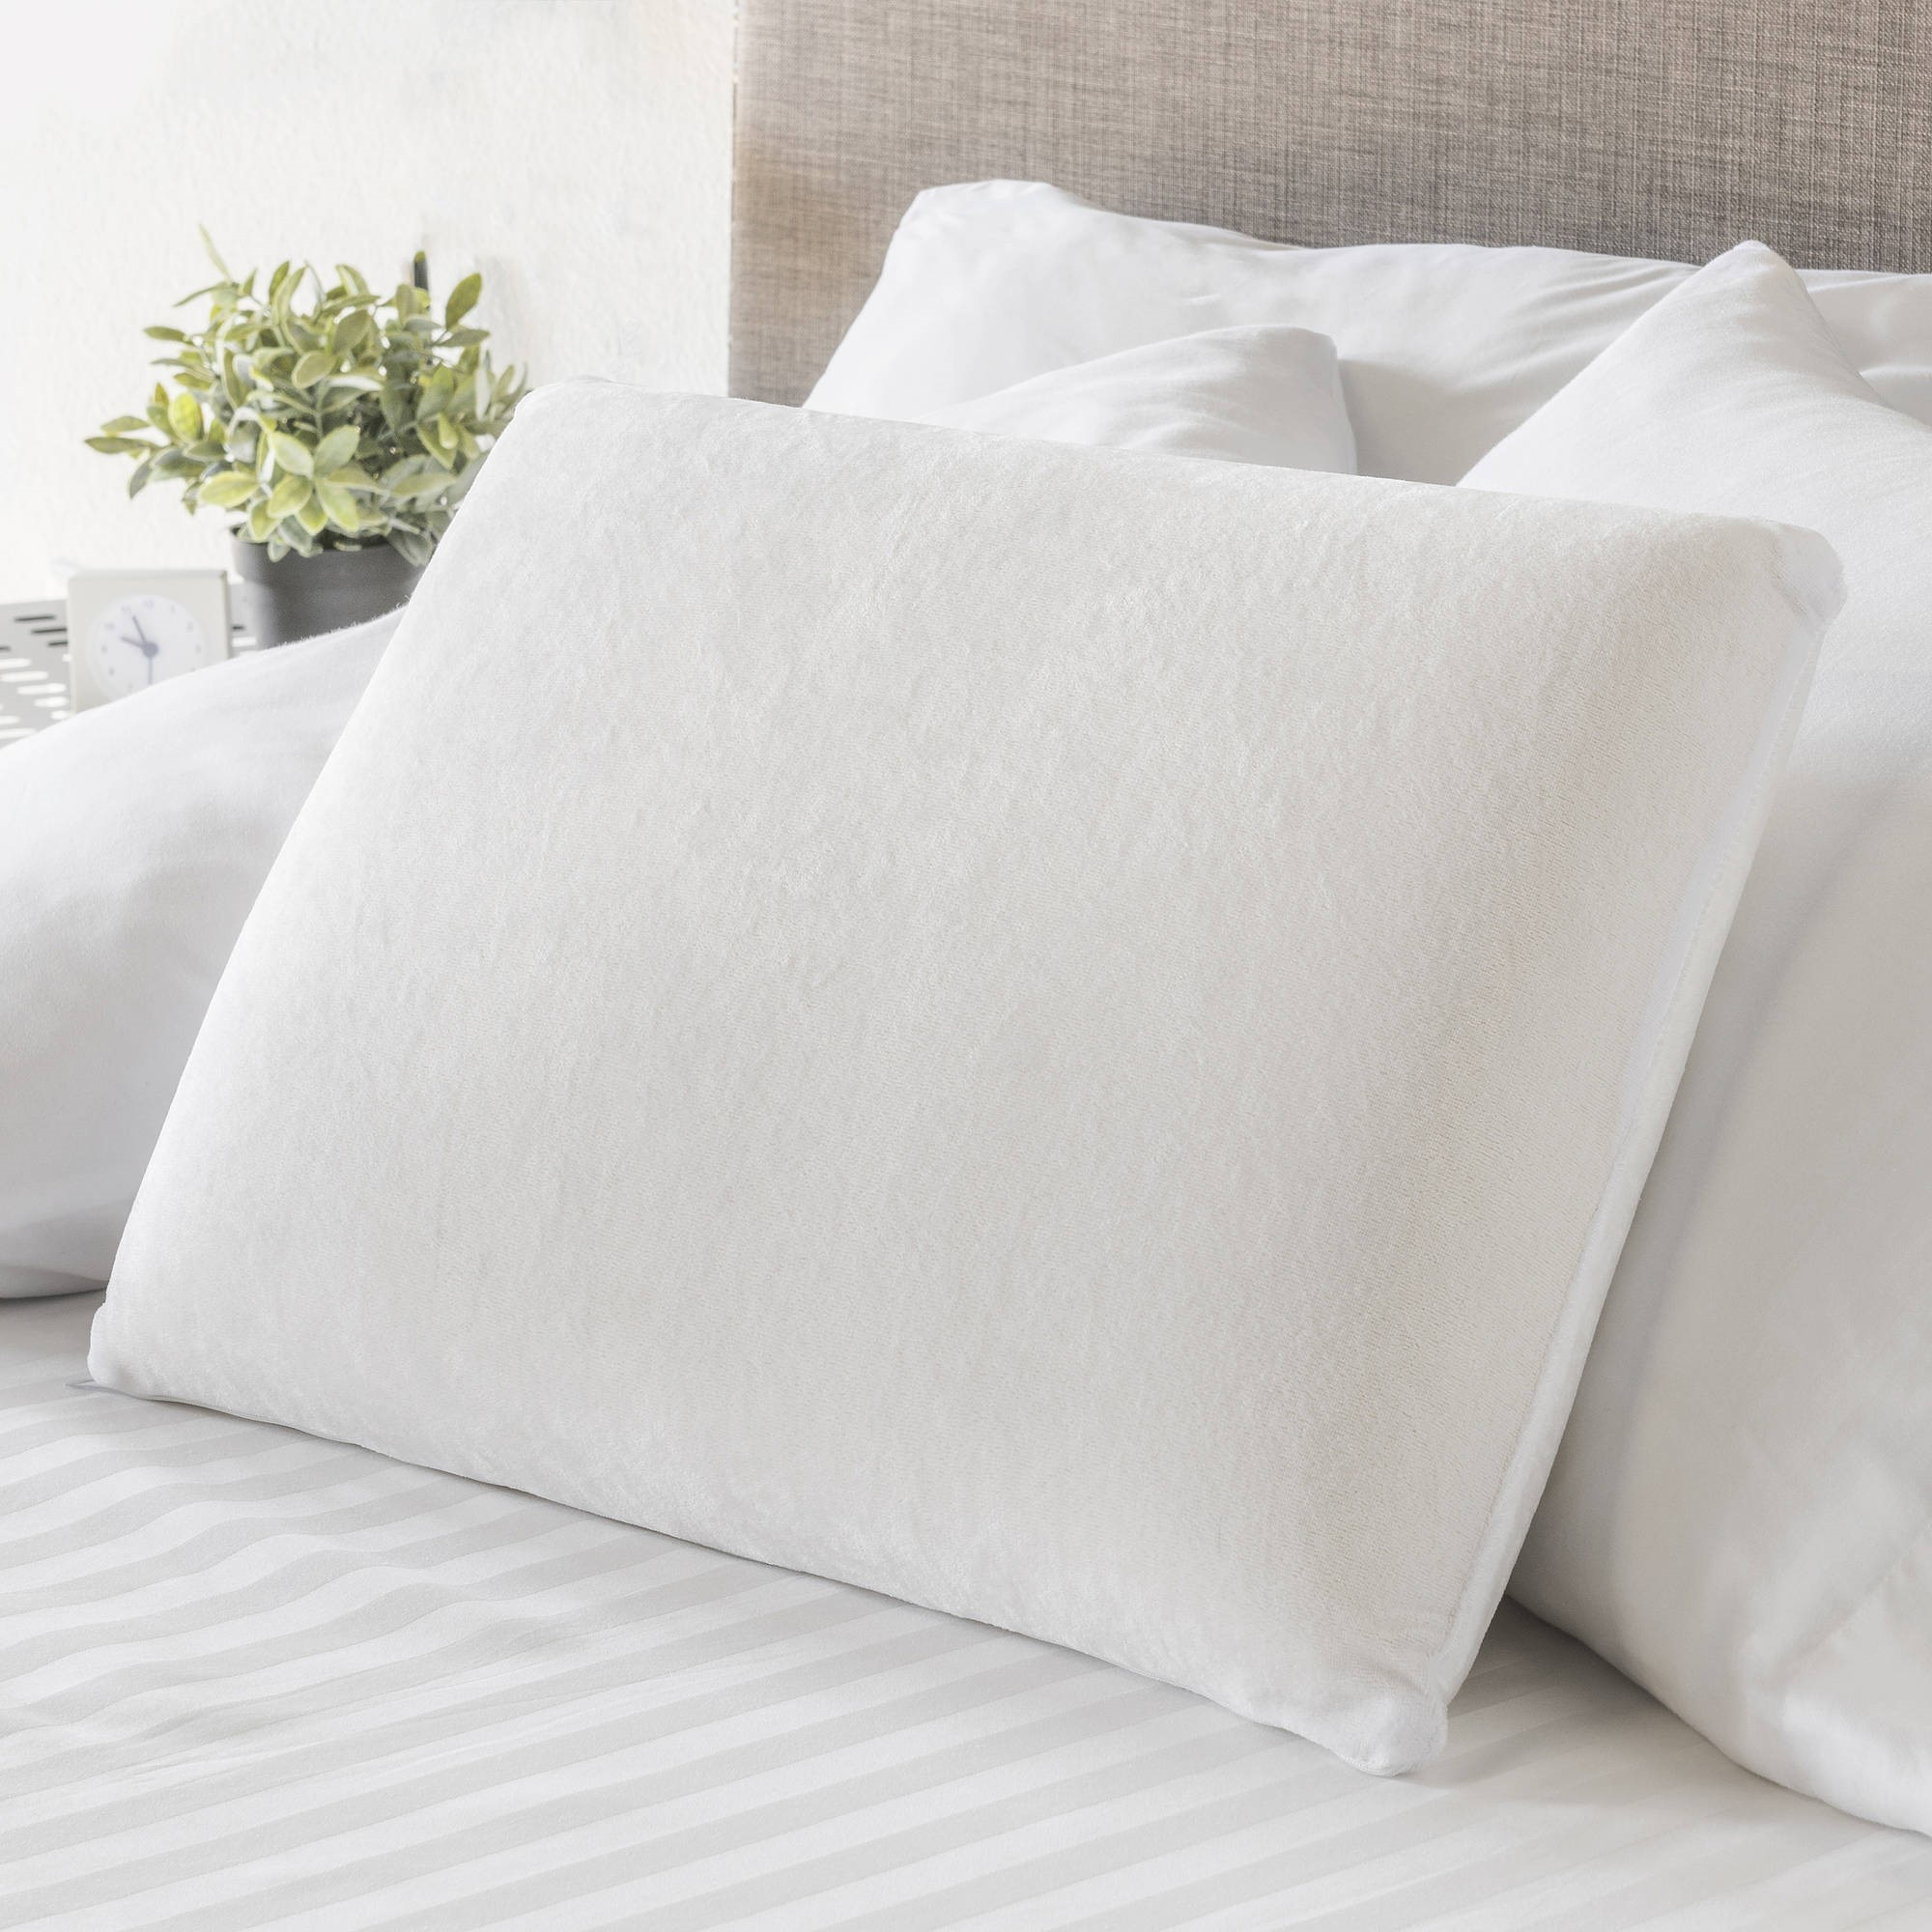 Mainstays Memory Foam Traditional Pillow, 1 Each